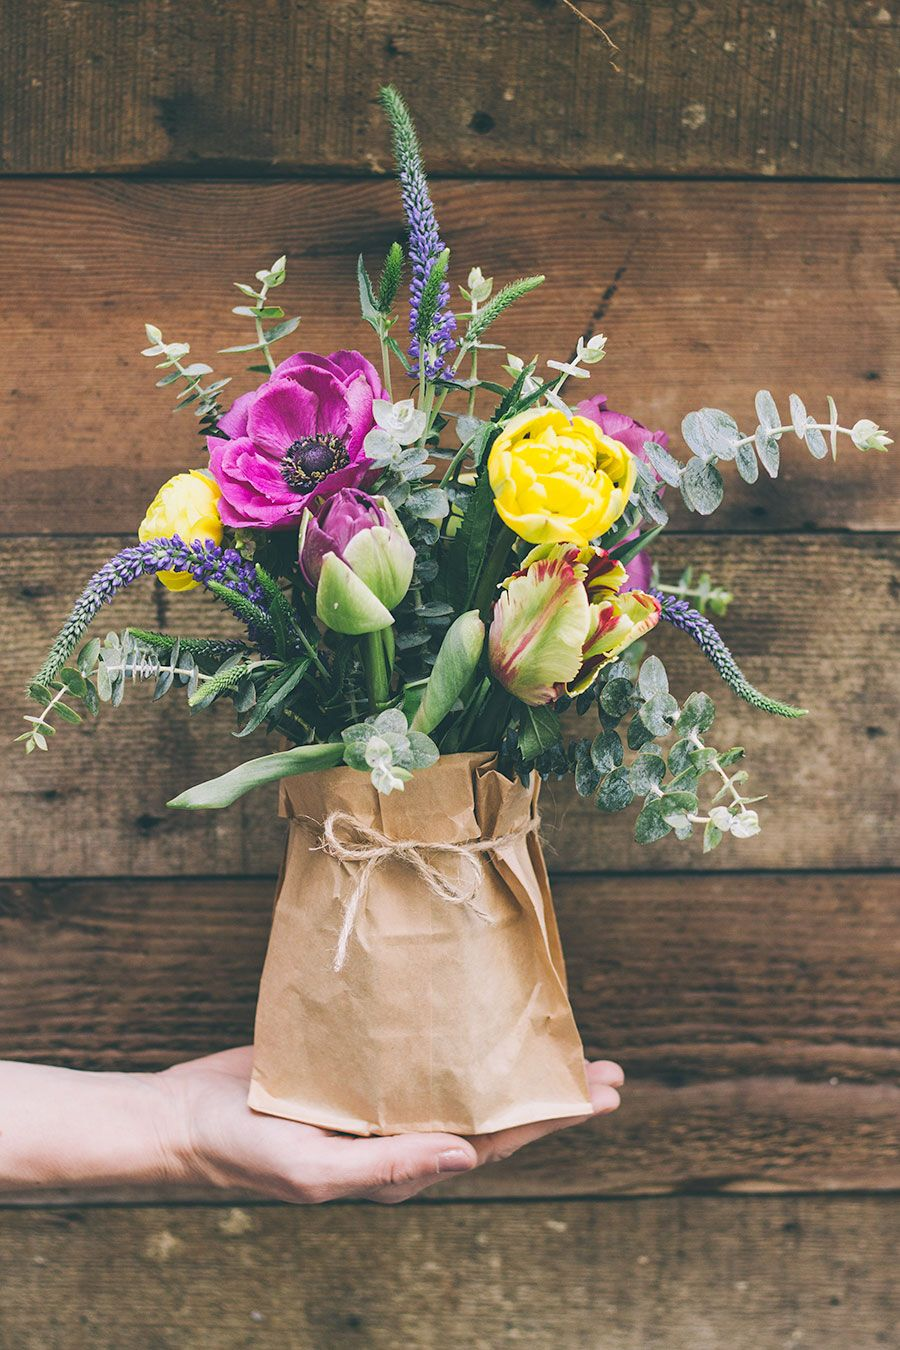 Pop Beautiful Flowers In A Paper Bag And Tie With A Small Piece Of